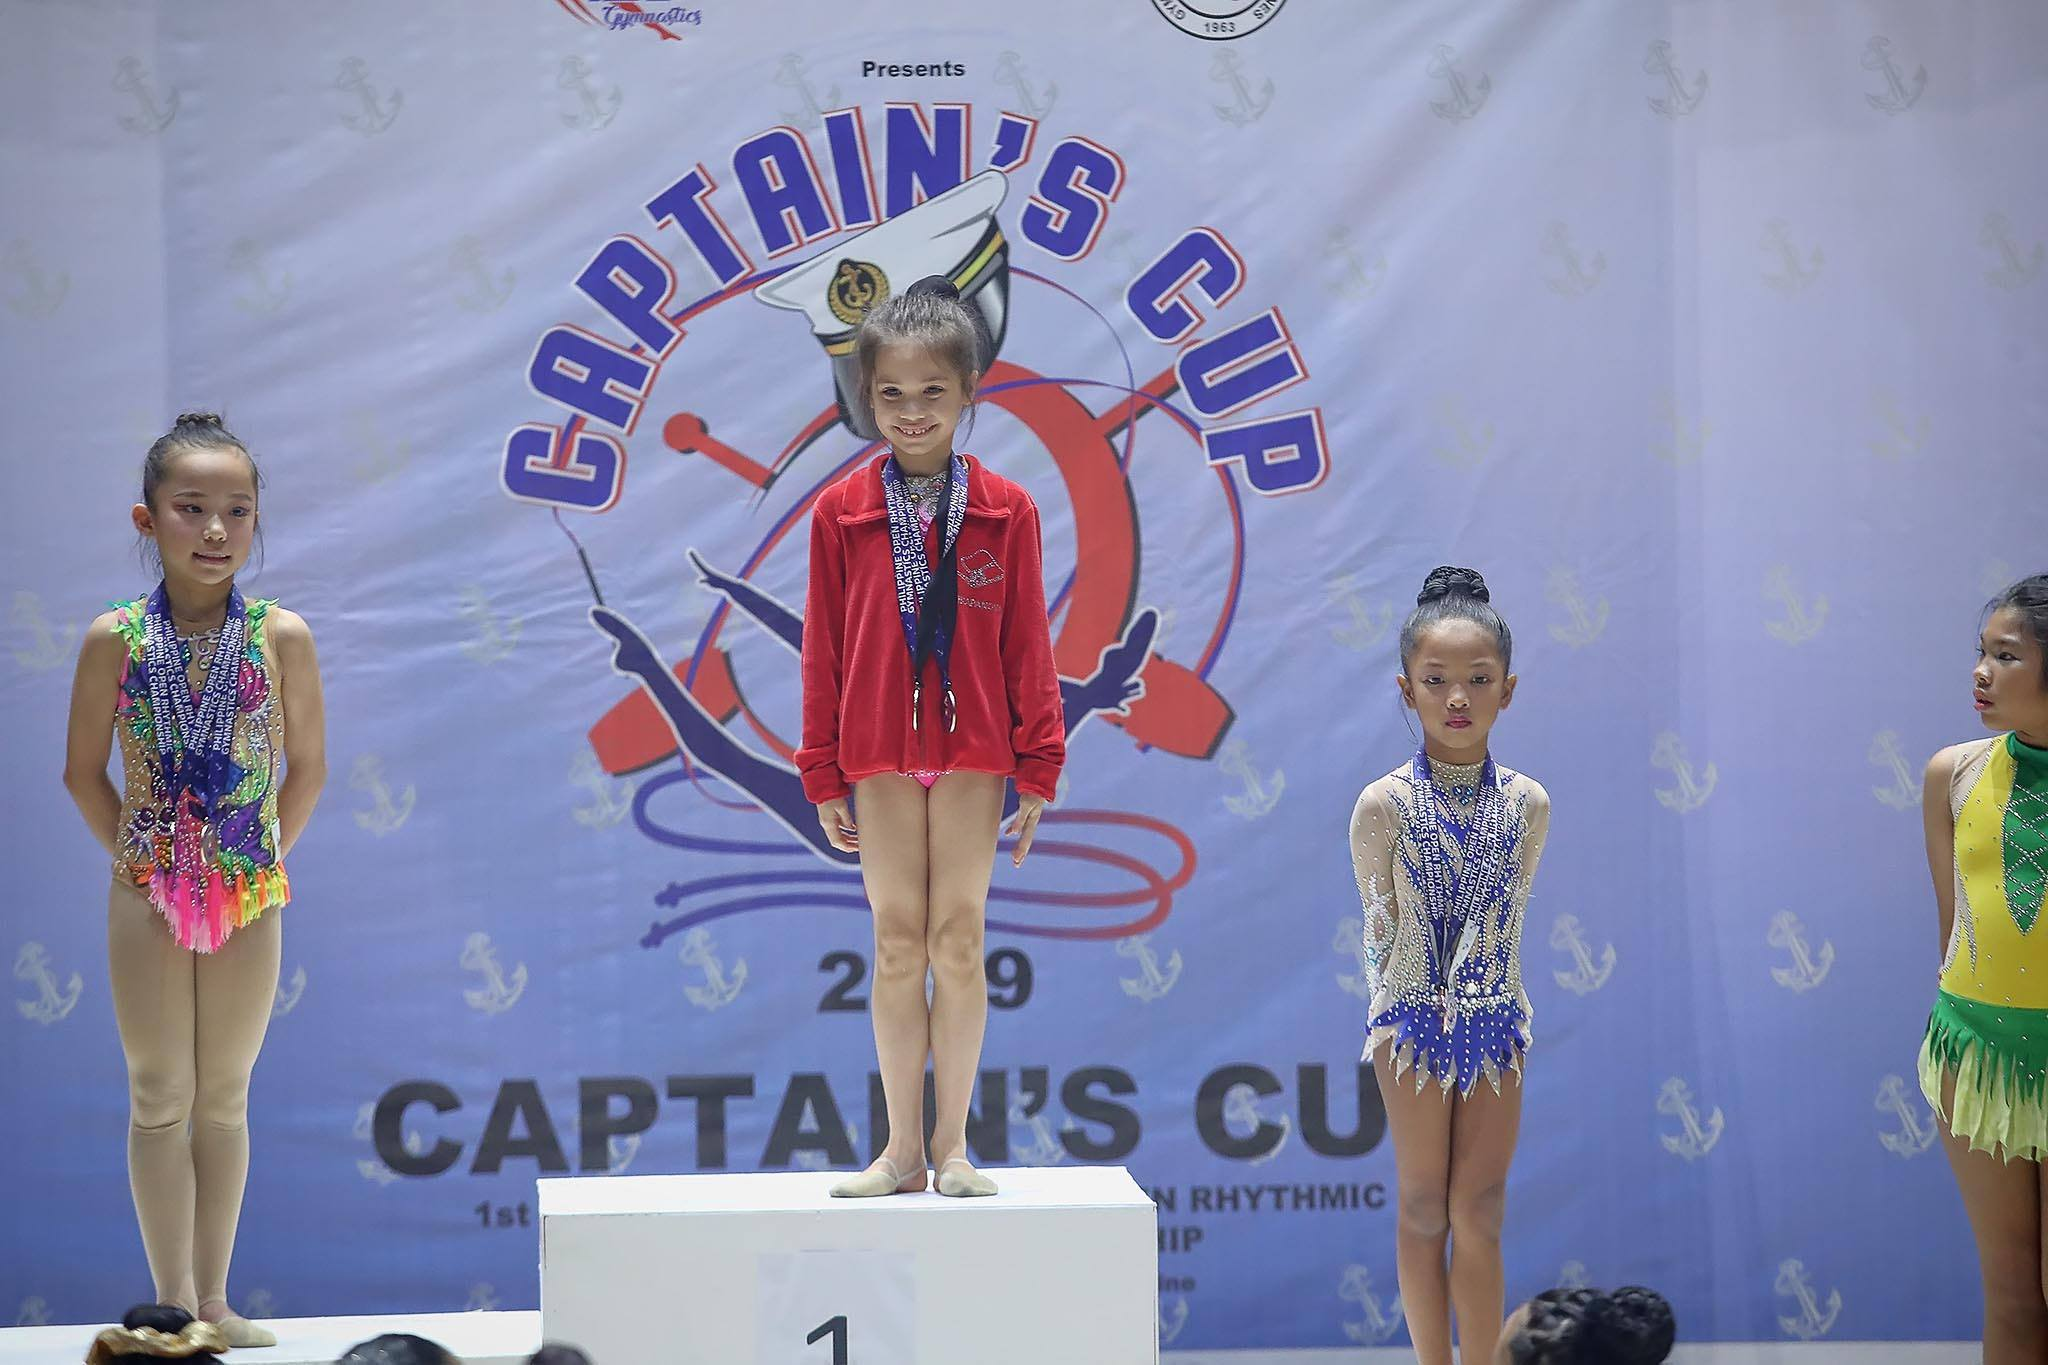 1st Captains Cup 2019 11